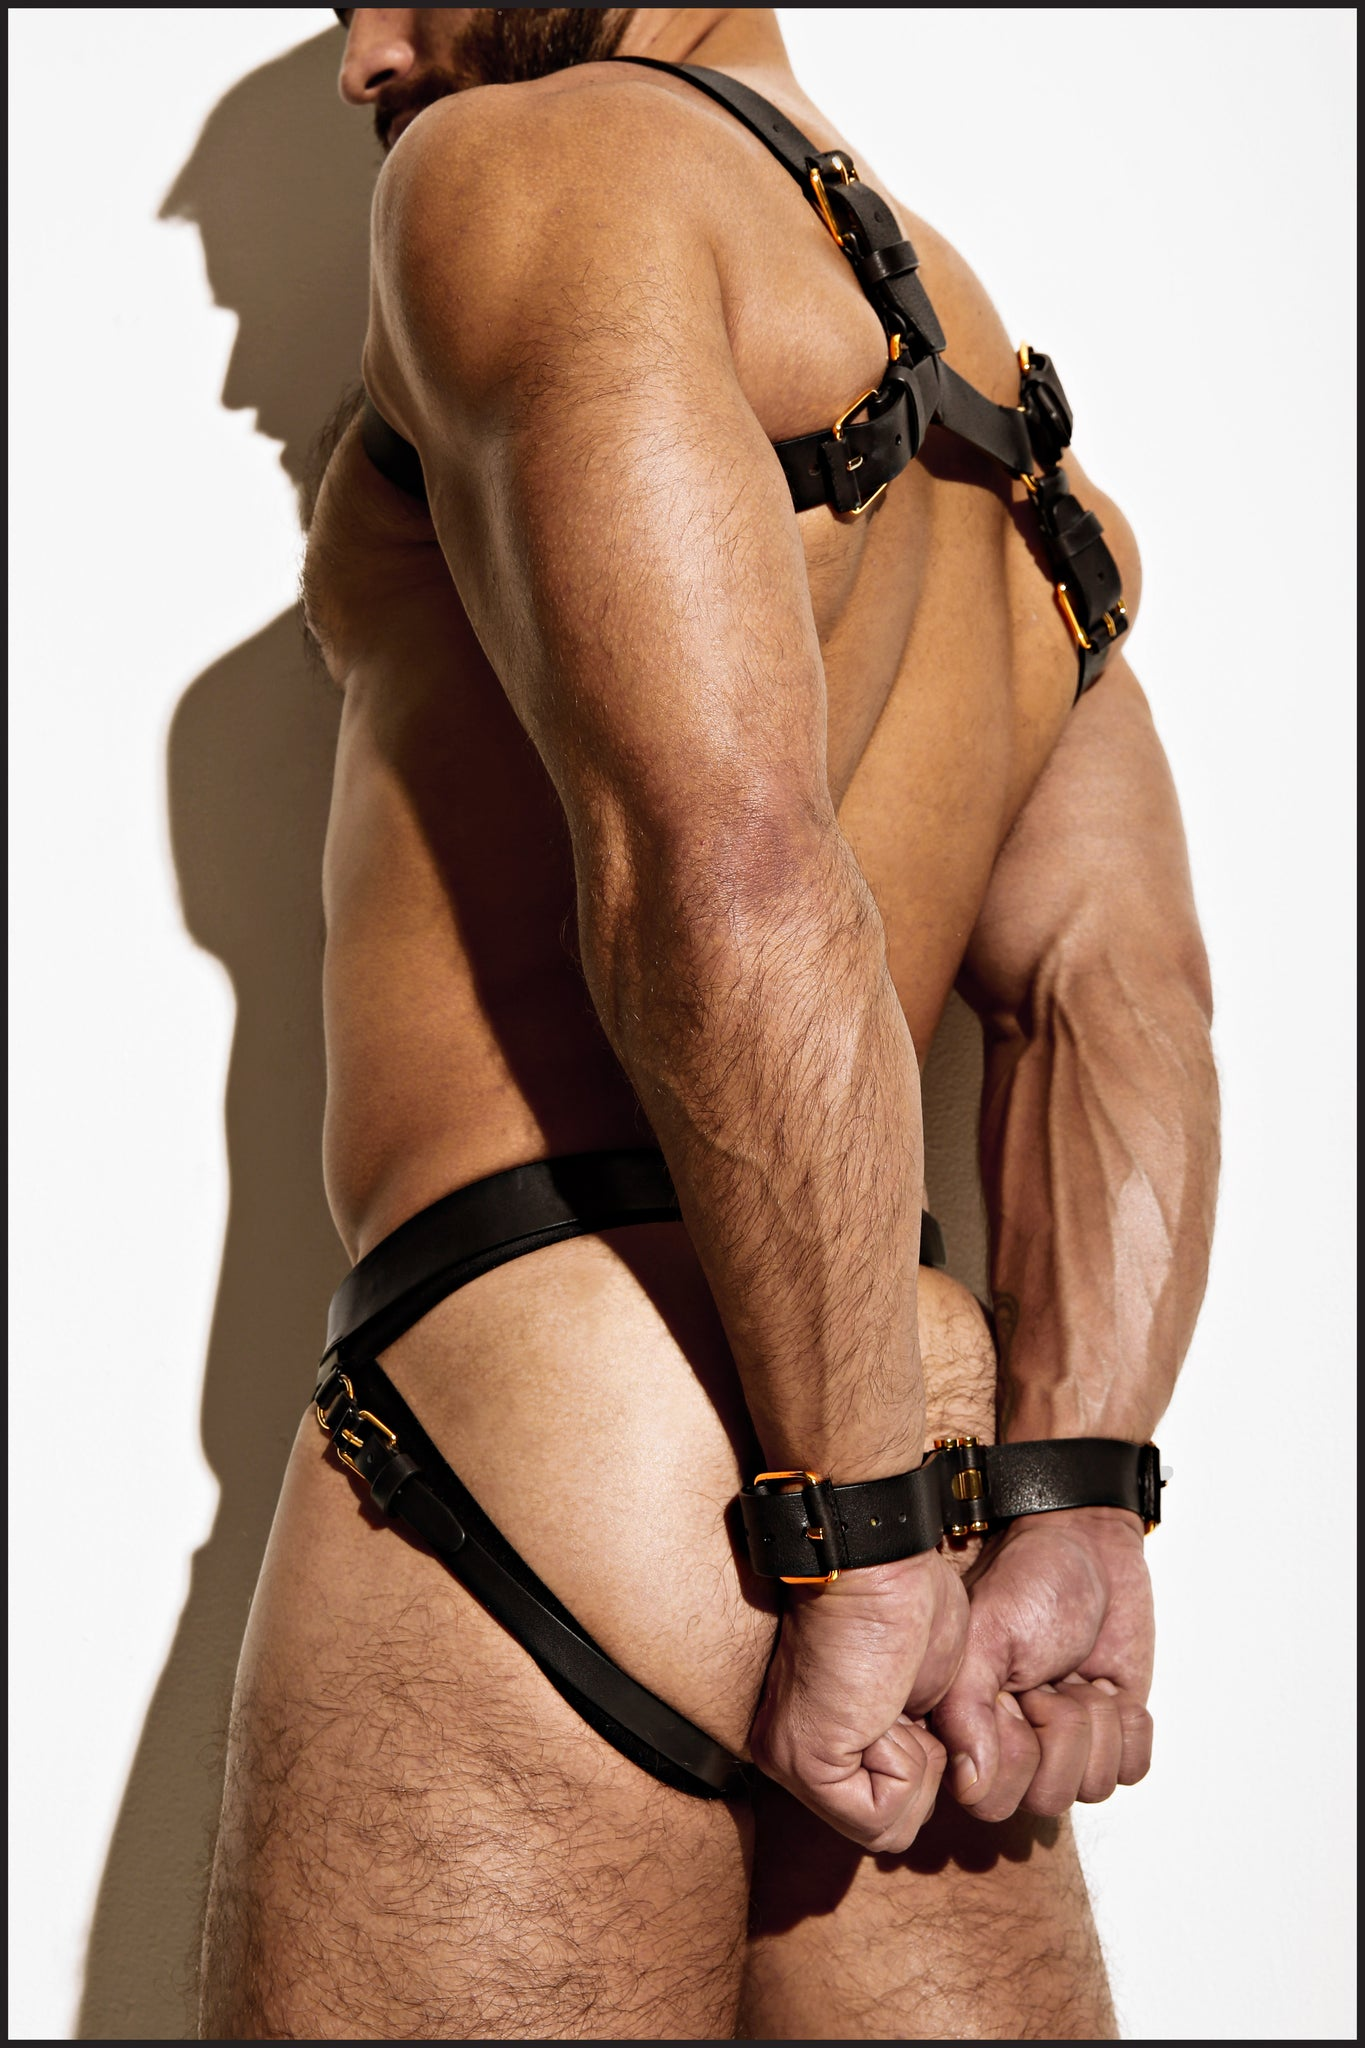 Leather Restraints